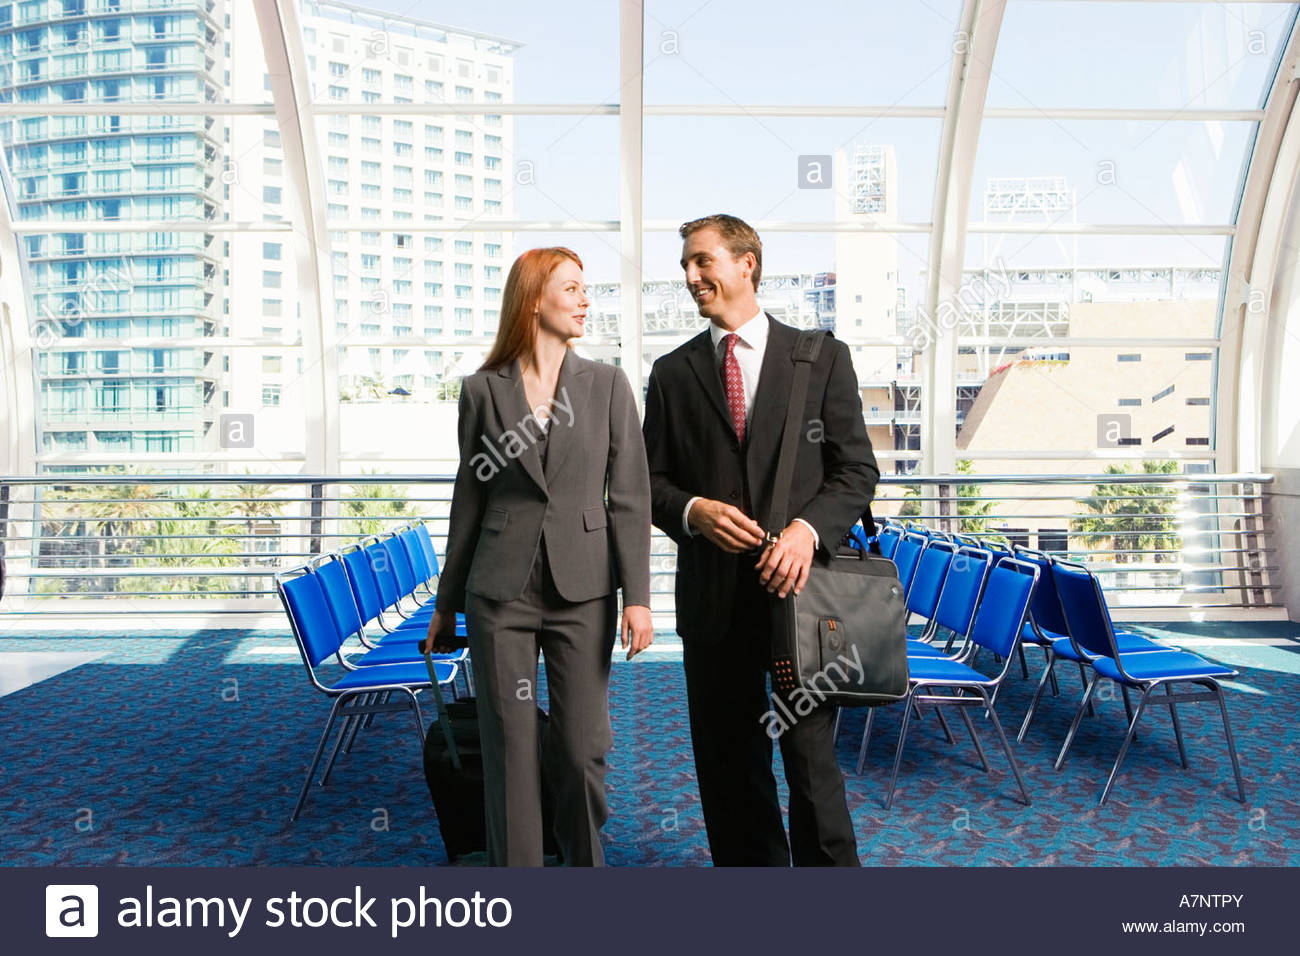 Businessman and woman walking with luggage in tow in airport departure lounge smiling front view - Stock Image